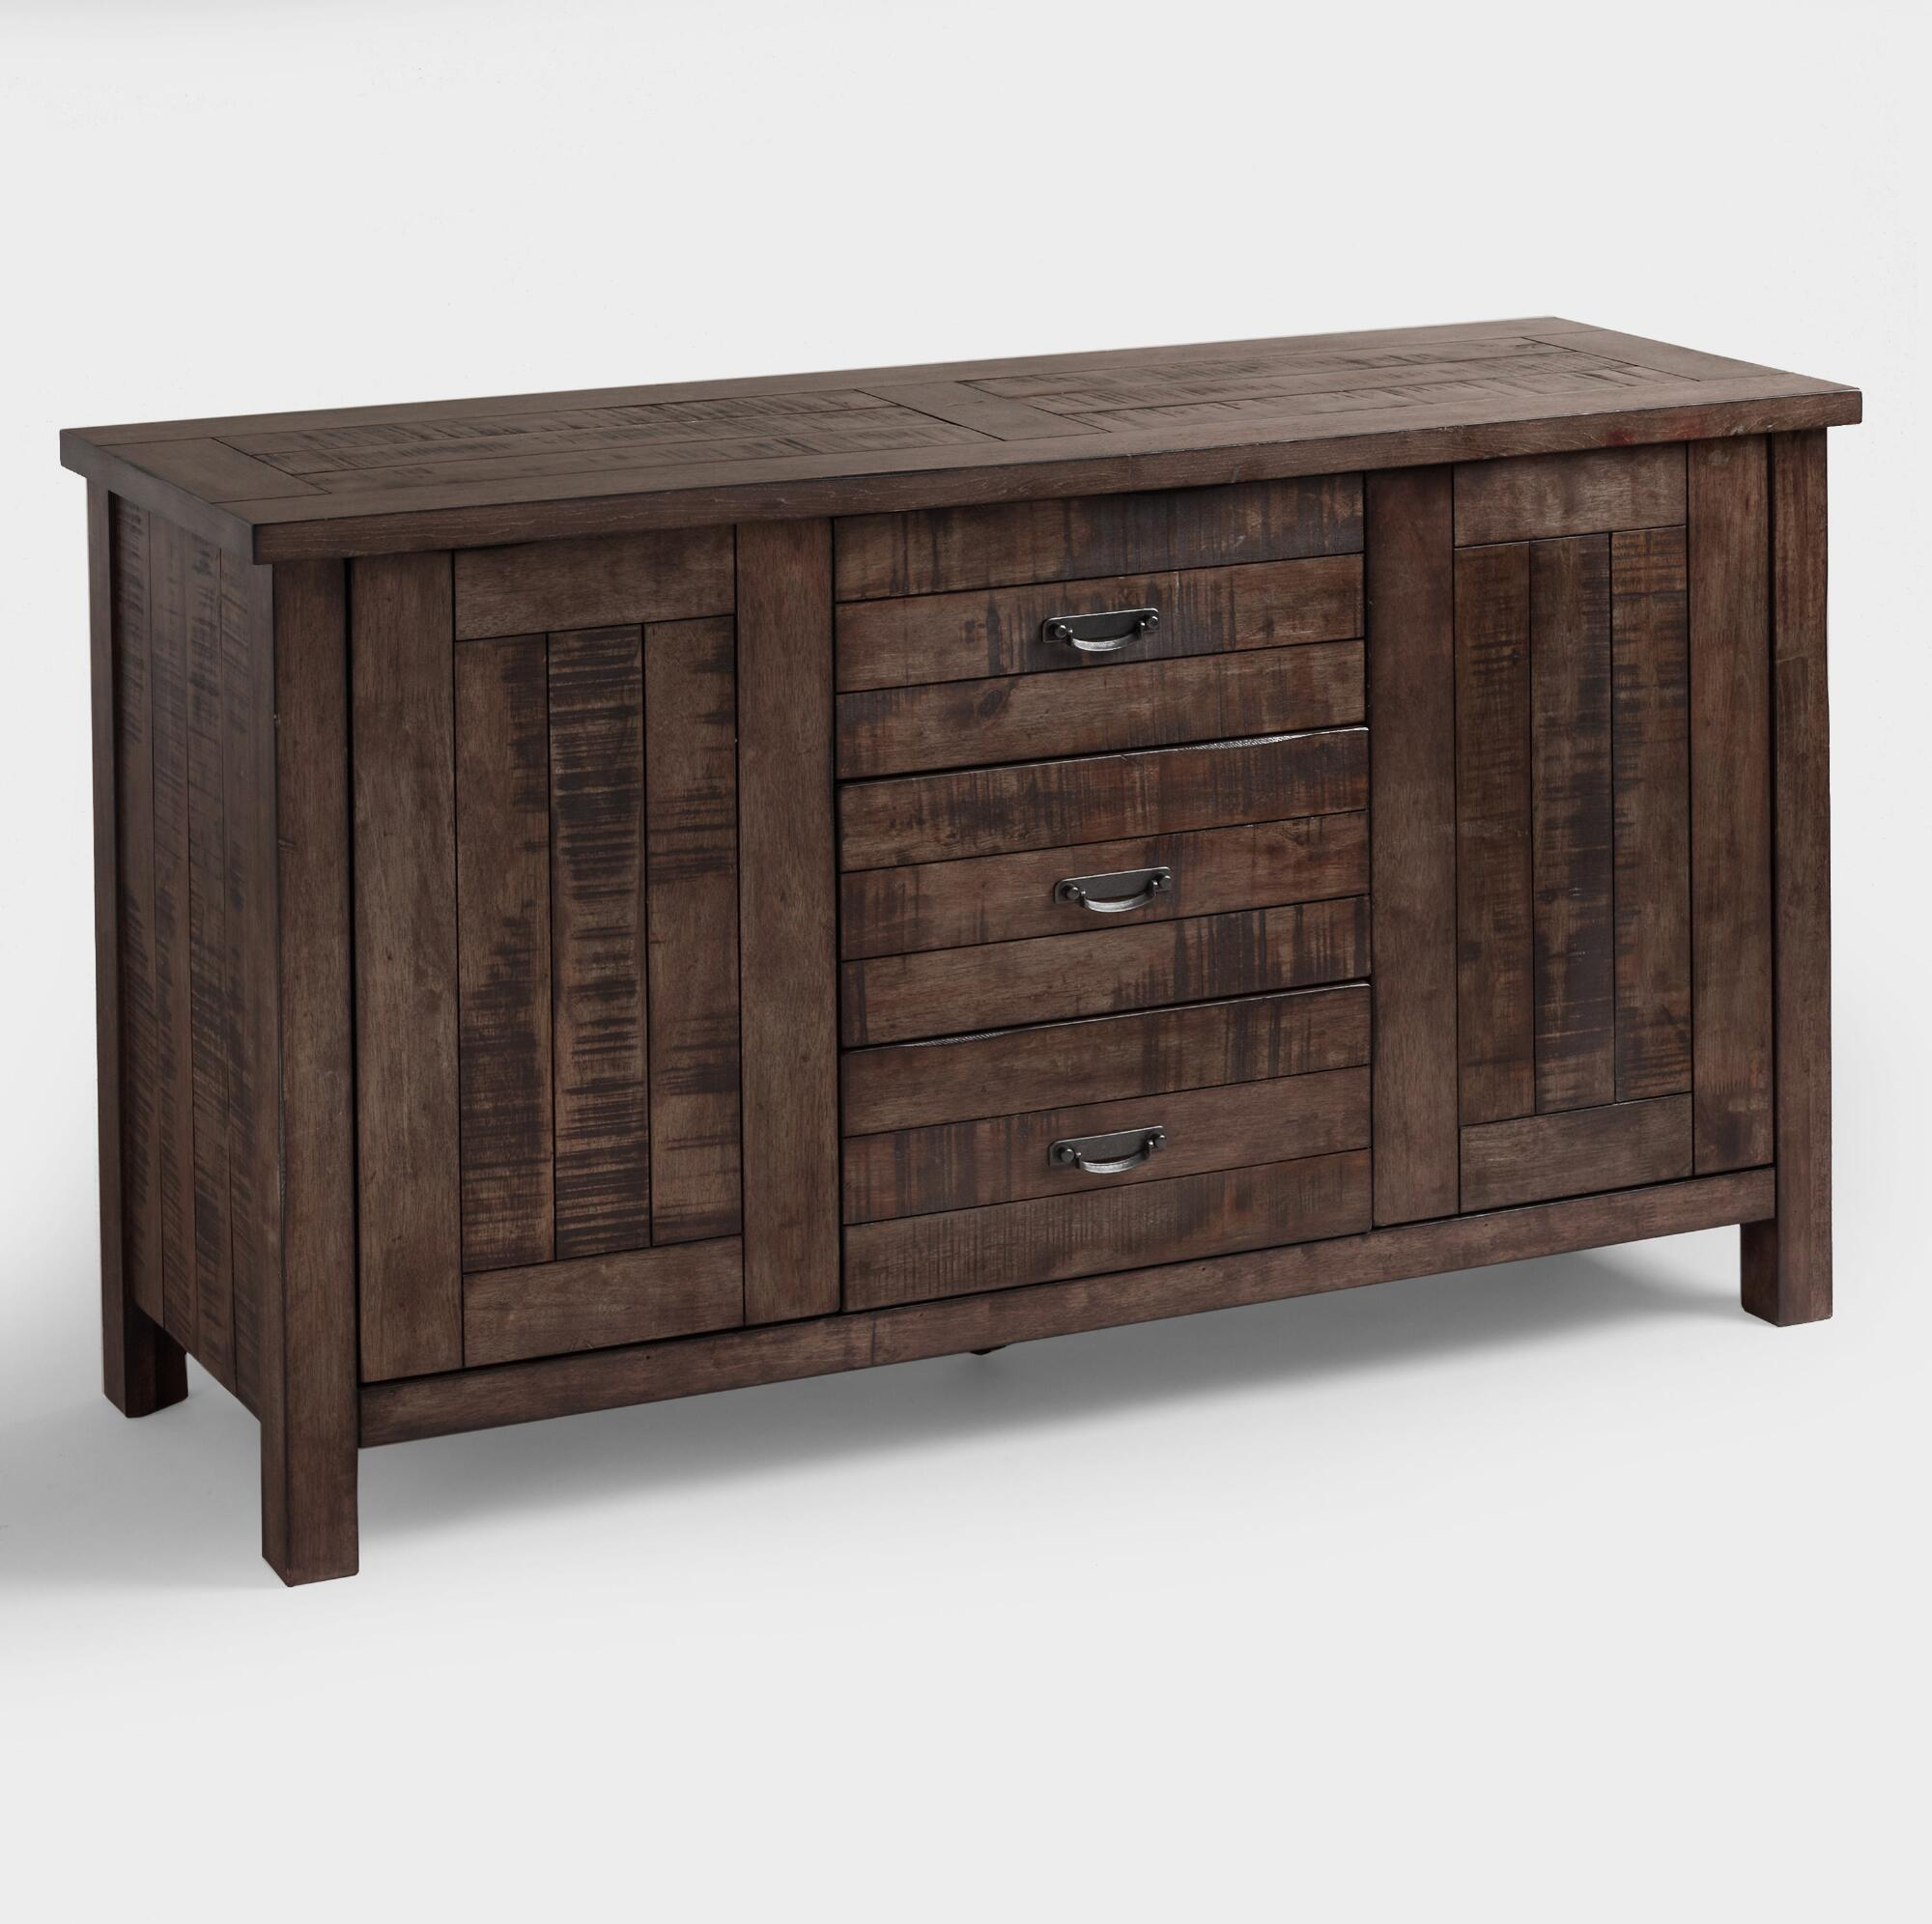 Wood Garner Sideboard | World Market